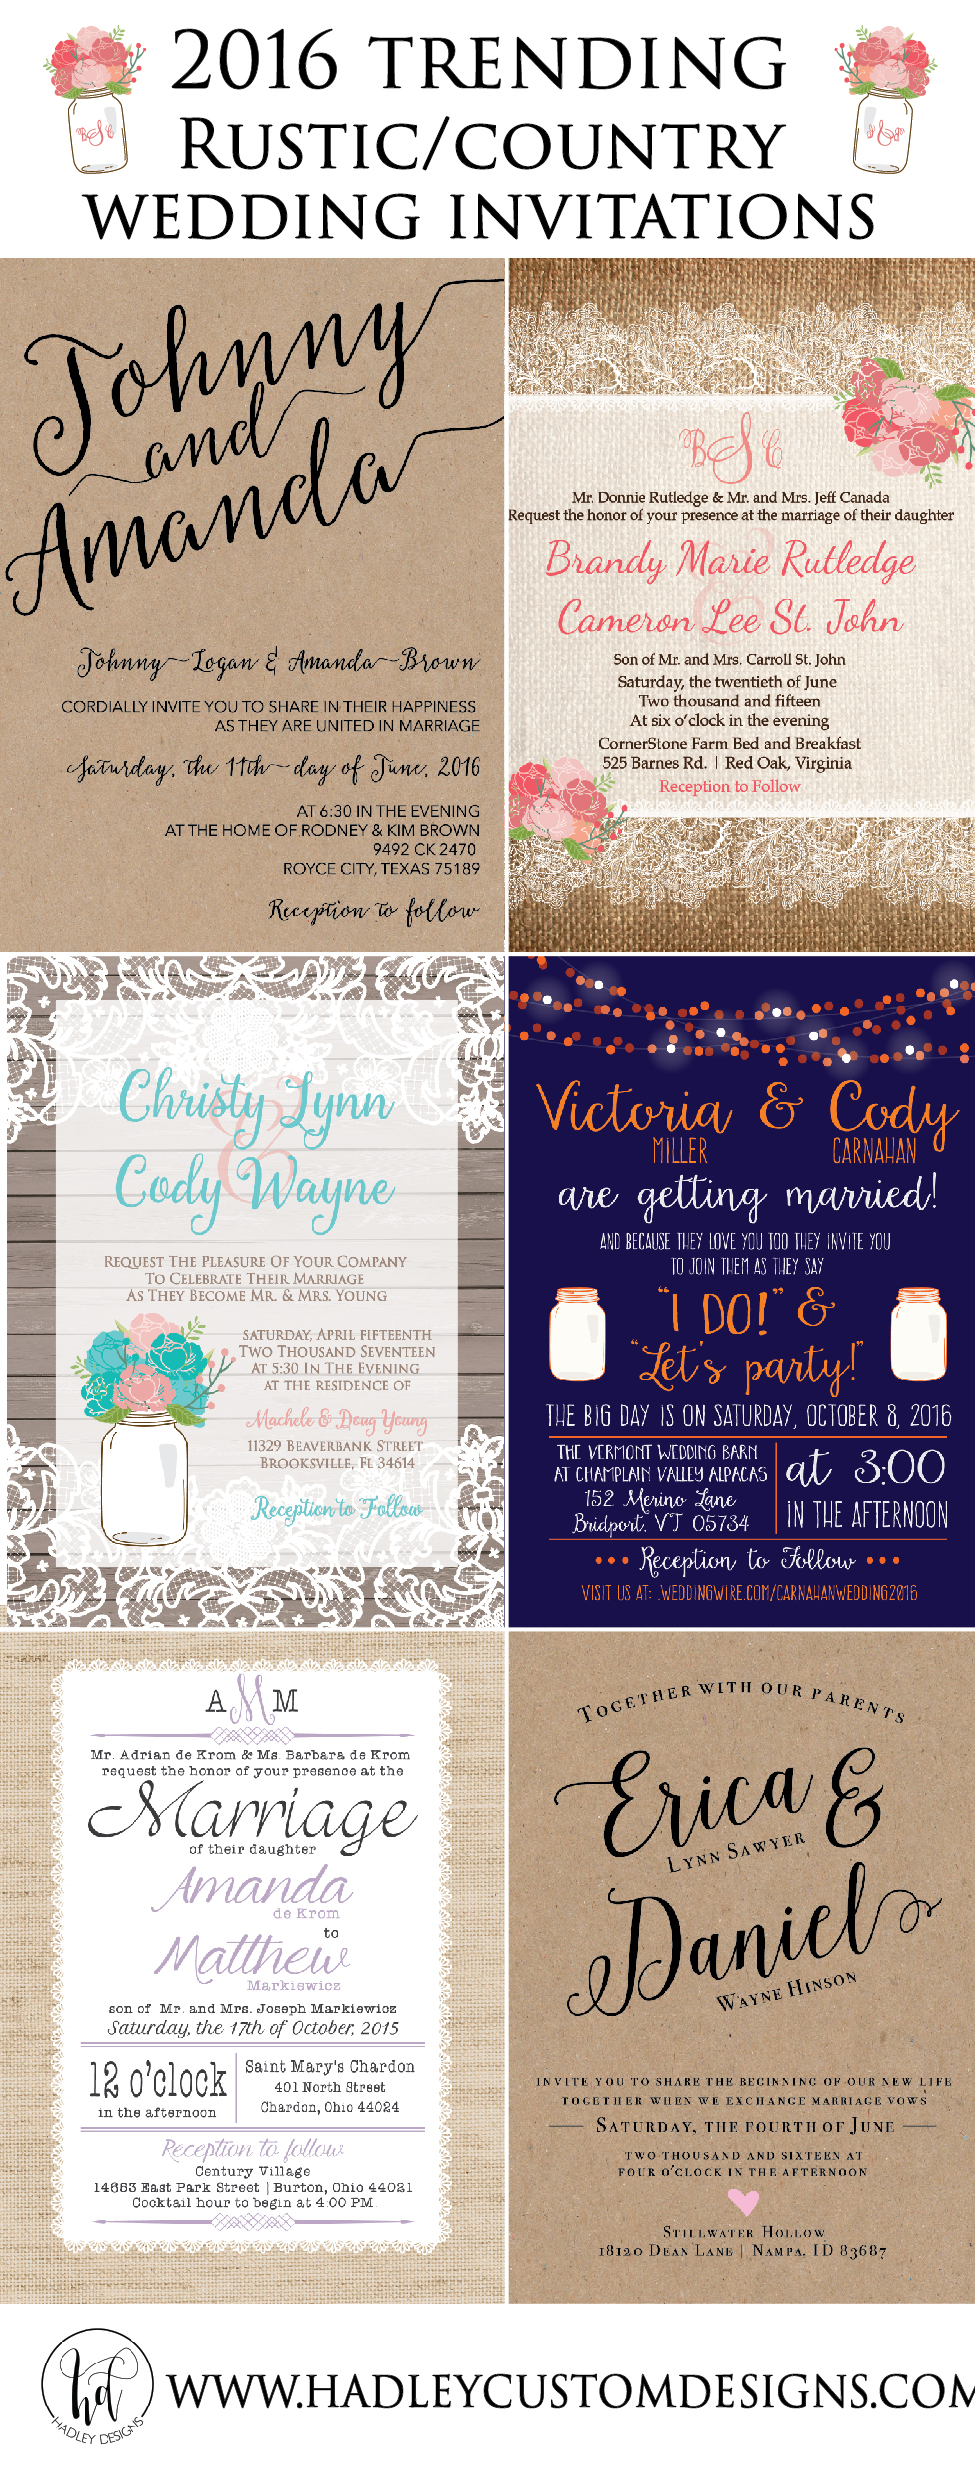 Rustic Wedding Invitations, Burlap & Lace Wedding Invitation, Country Wedding Invitation, Western Wedding Invitations, Elegant Wedding Invitation, Classic Wedding Invitation, Formal Wedding Invitation